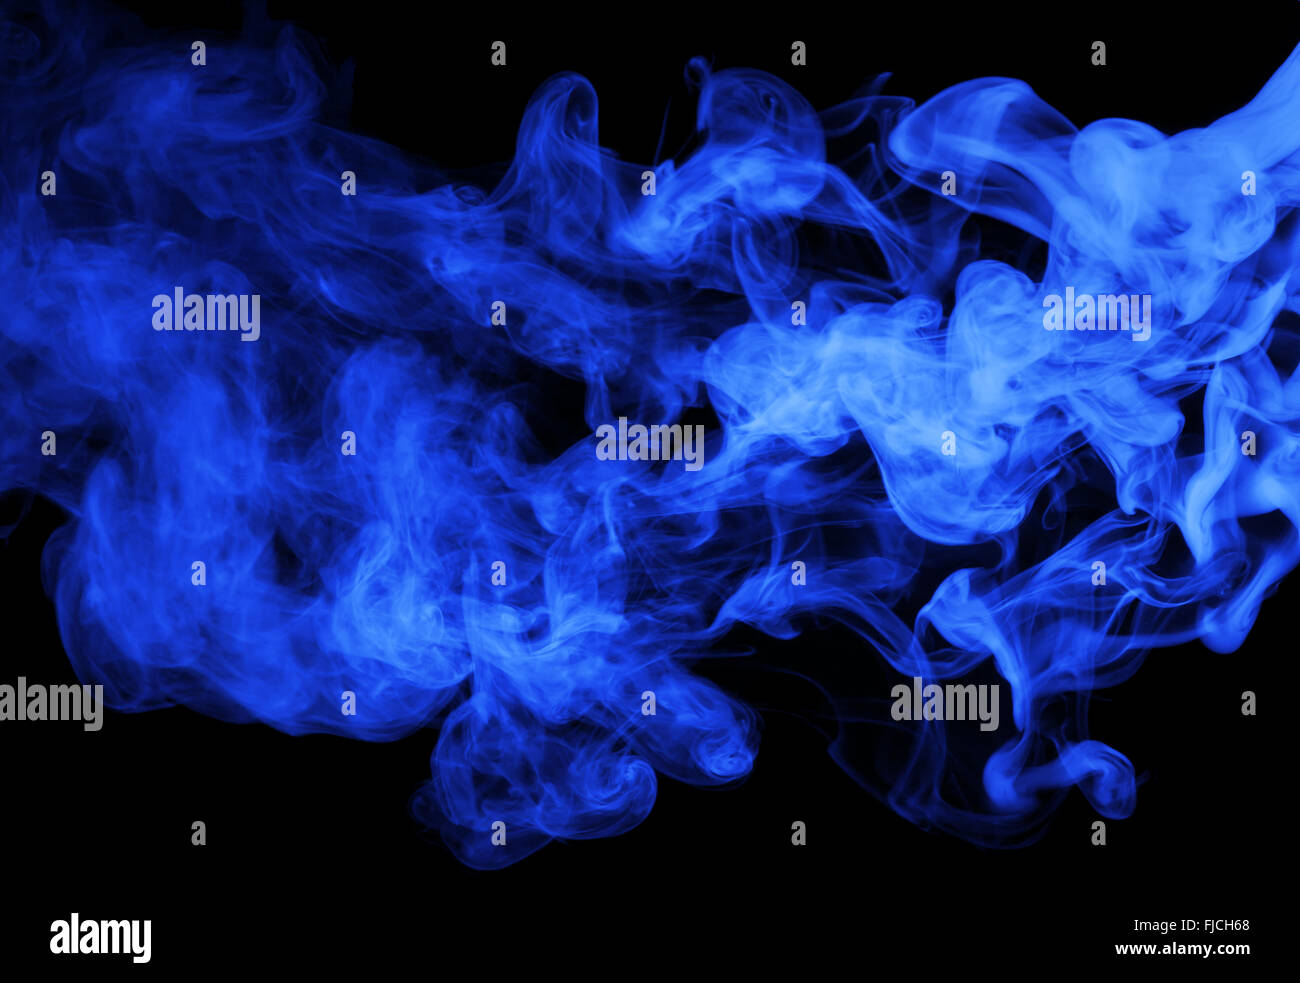 navy blue steam on the black background. - Stock Image